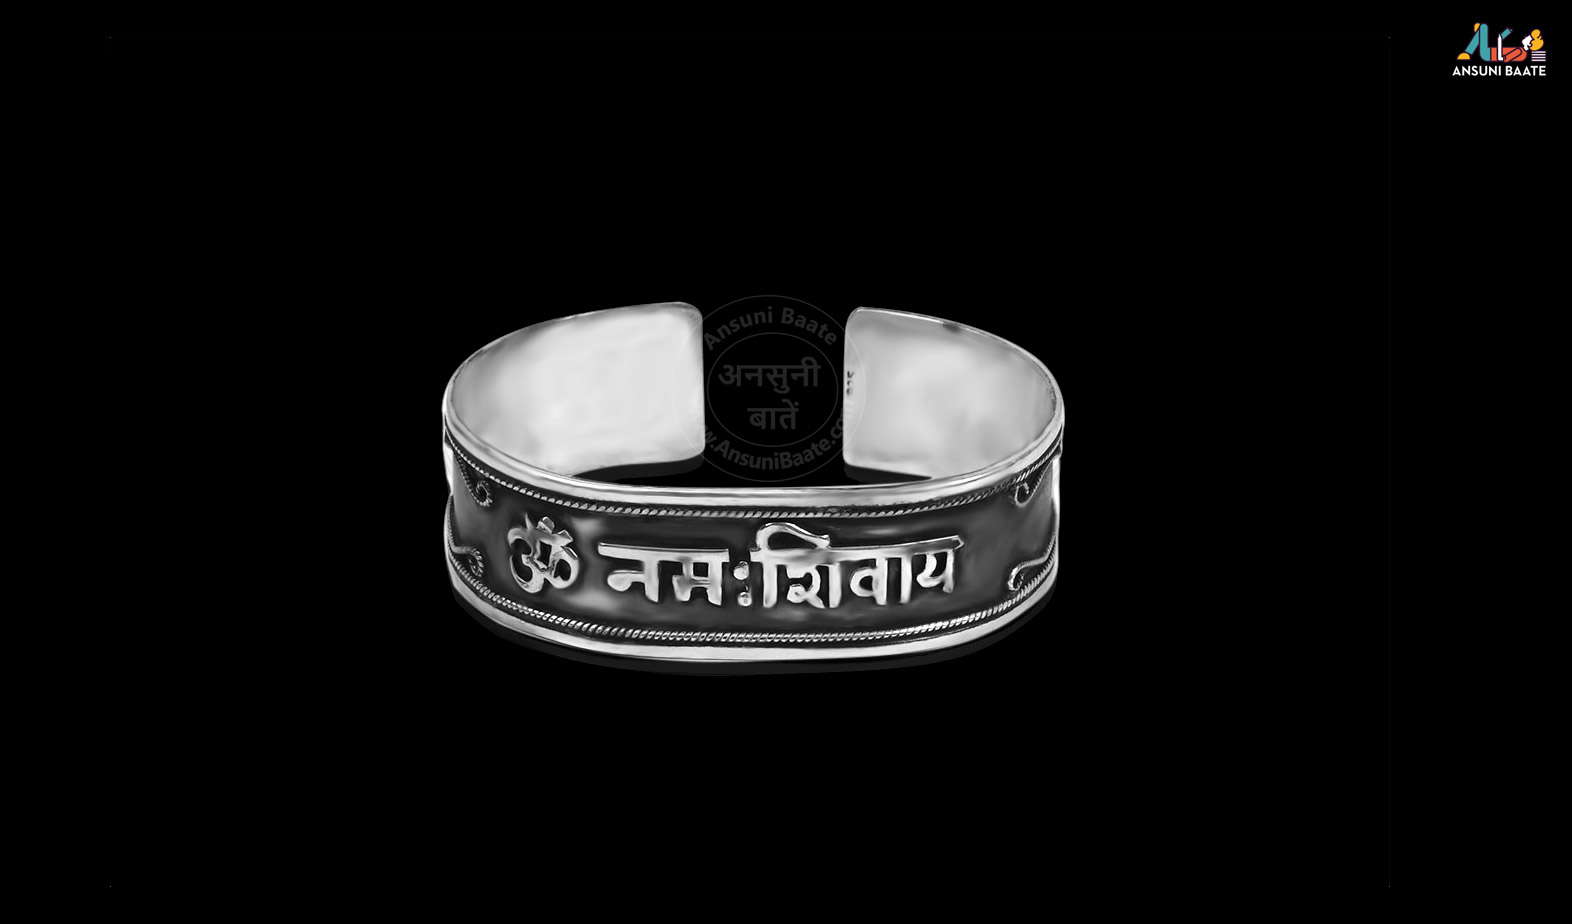 om bracelet image photo downlaod hd